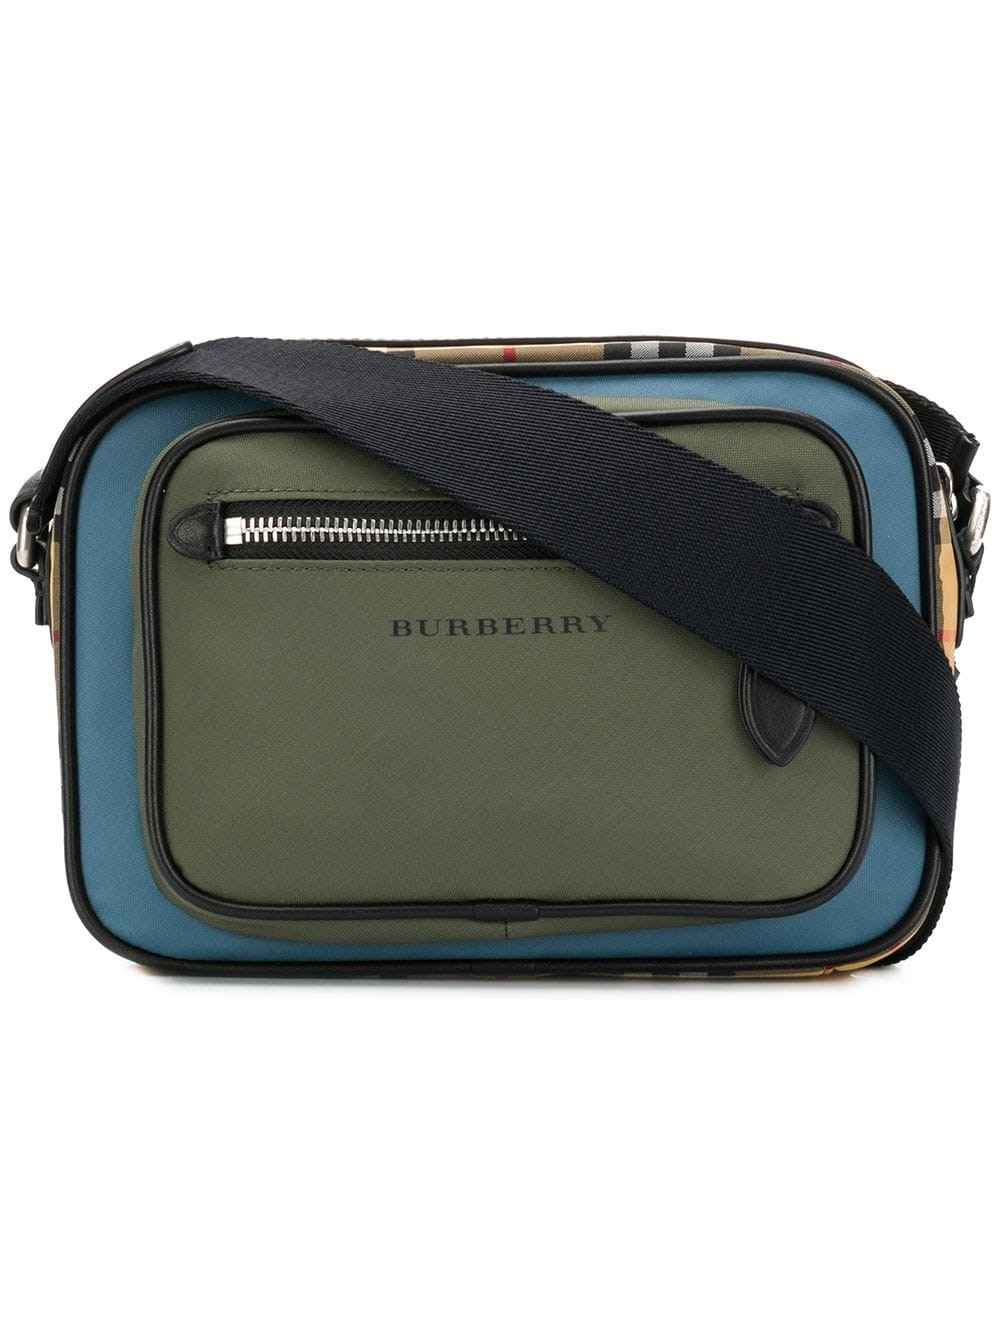 burberry london england PADDY SHOULDER BAG available on ... 749f97d7b1b7b